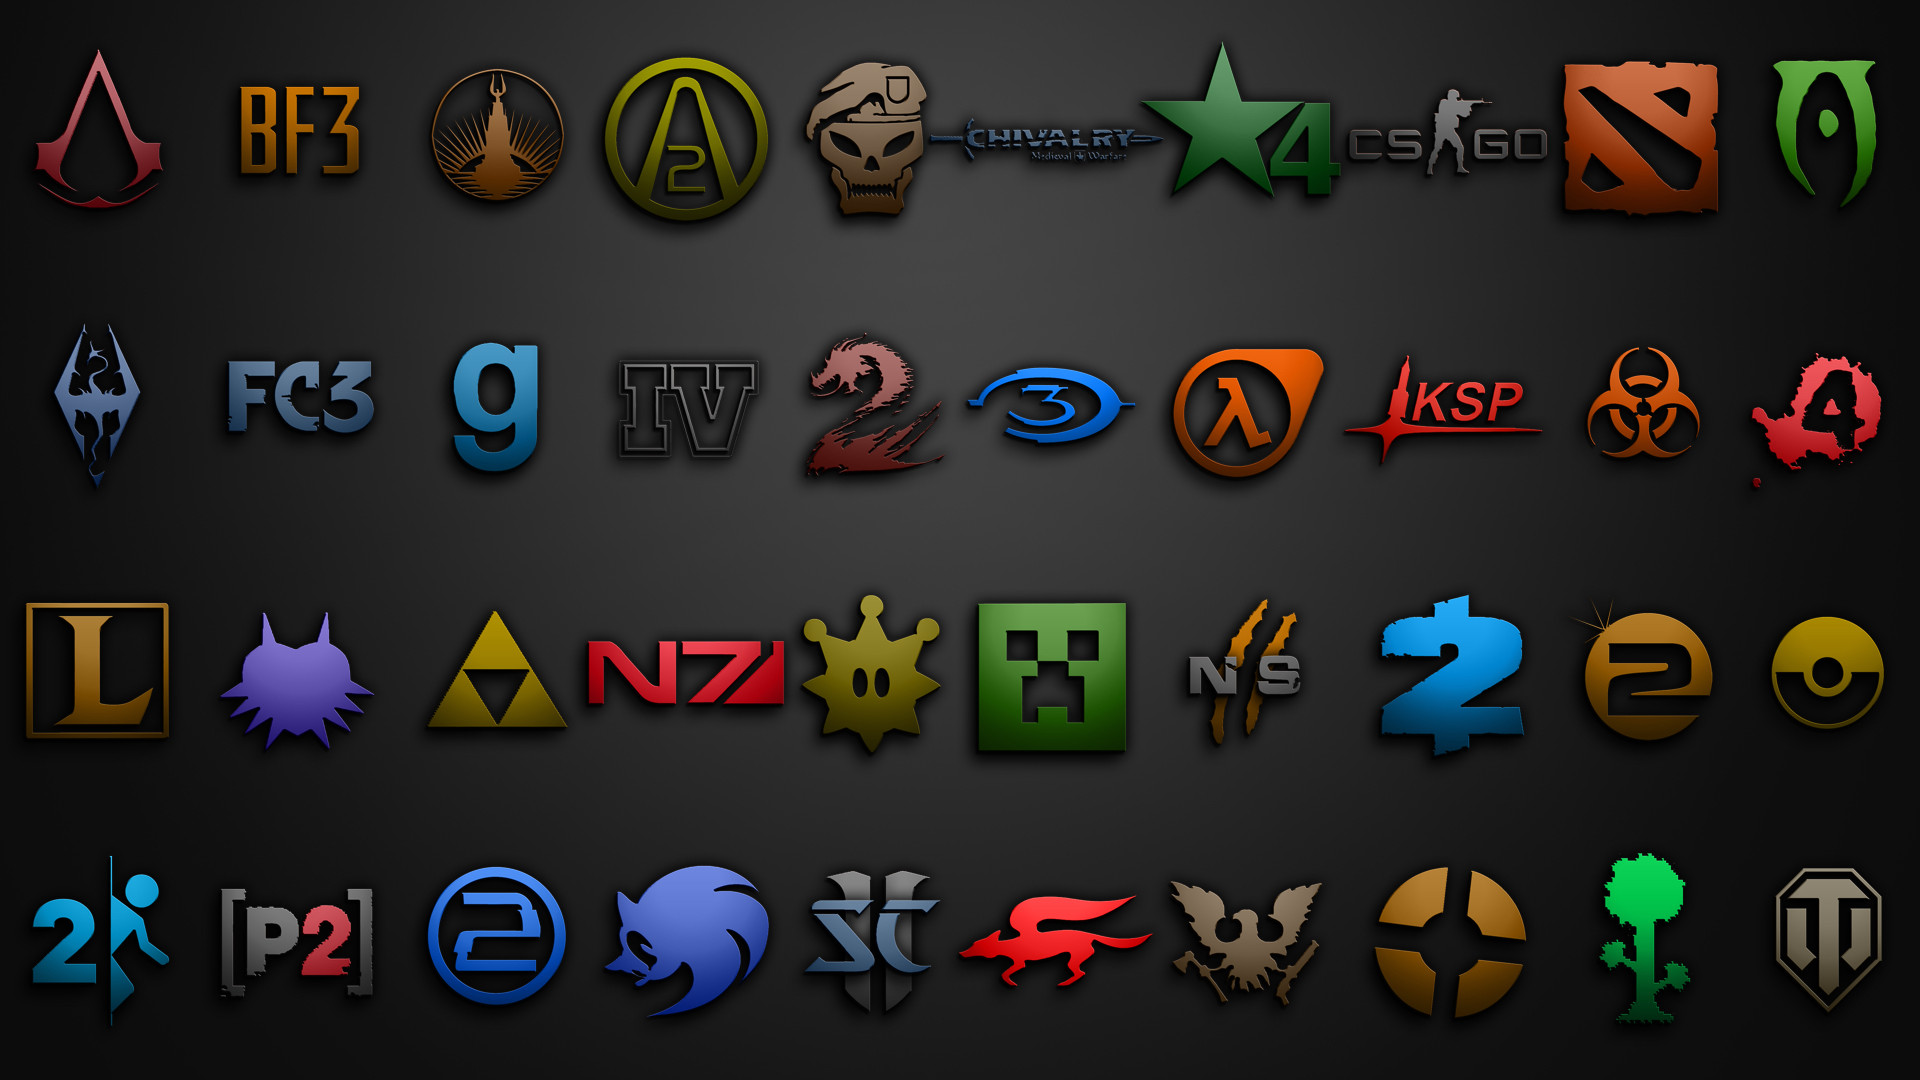 Video Game Icons Nexus 5 Wallpaper 1920x1080 1920x1080